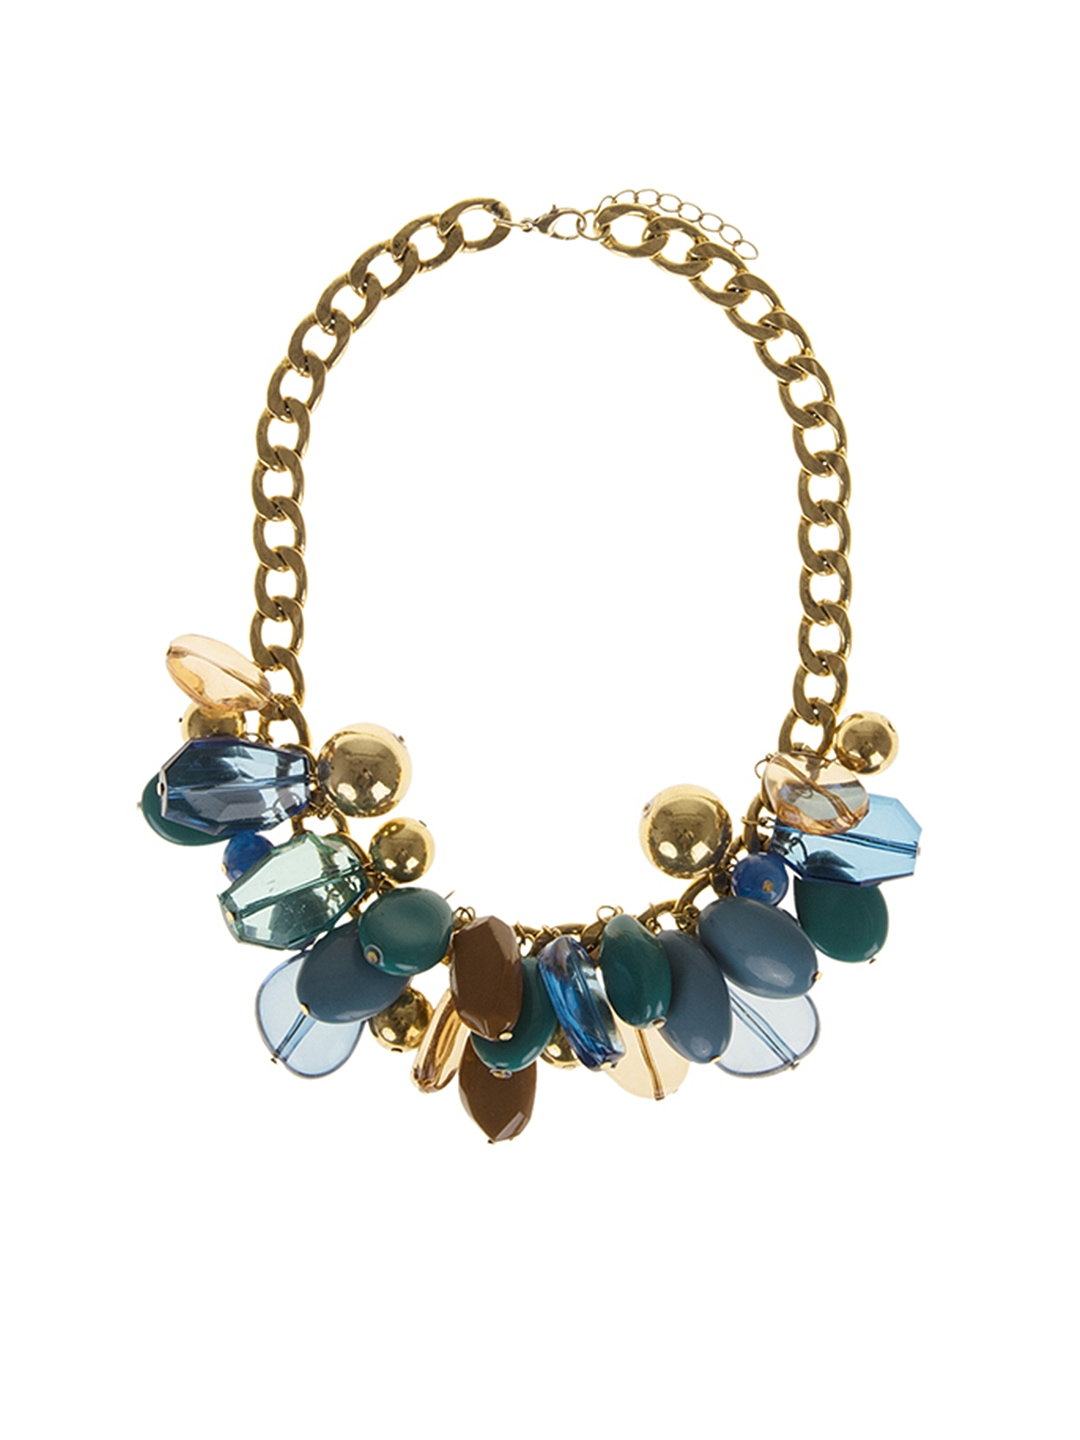 Myntra Parfois Gold Toned Matinee Necklace 790640 Buy